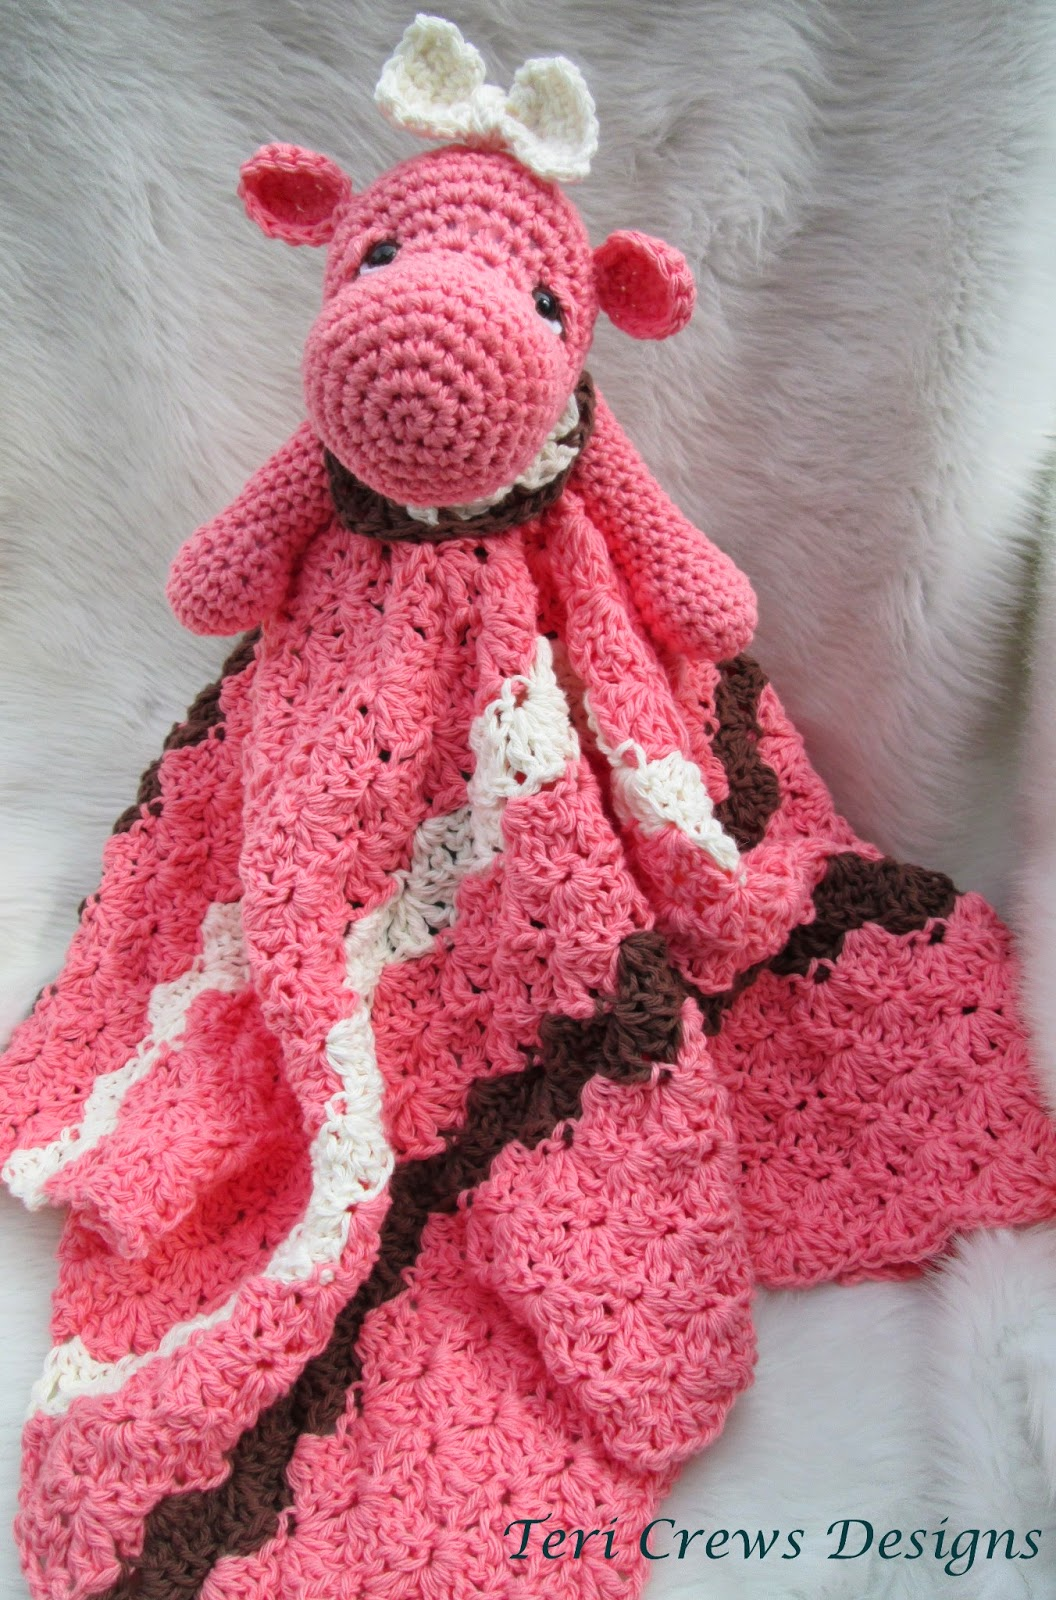 Free Crochet Pattern Huggy Blanket : Teris Blog: Hippo Huggy Blanket Crochet Pattern